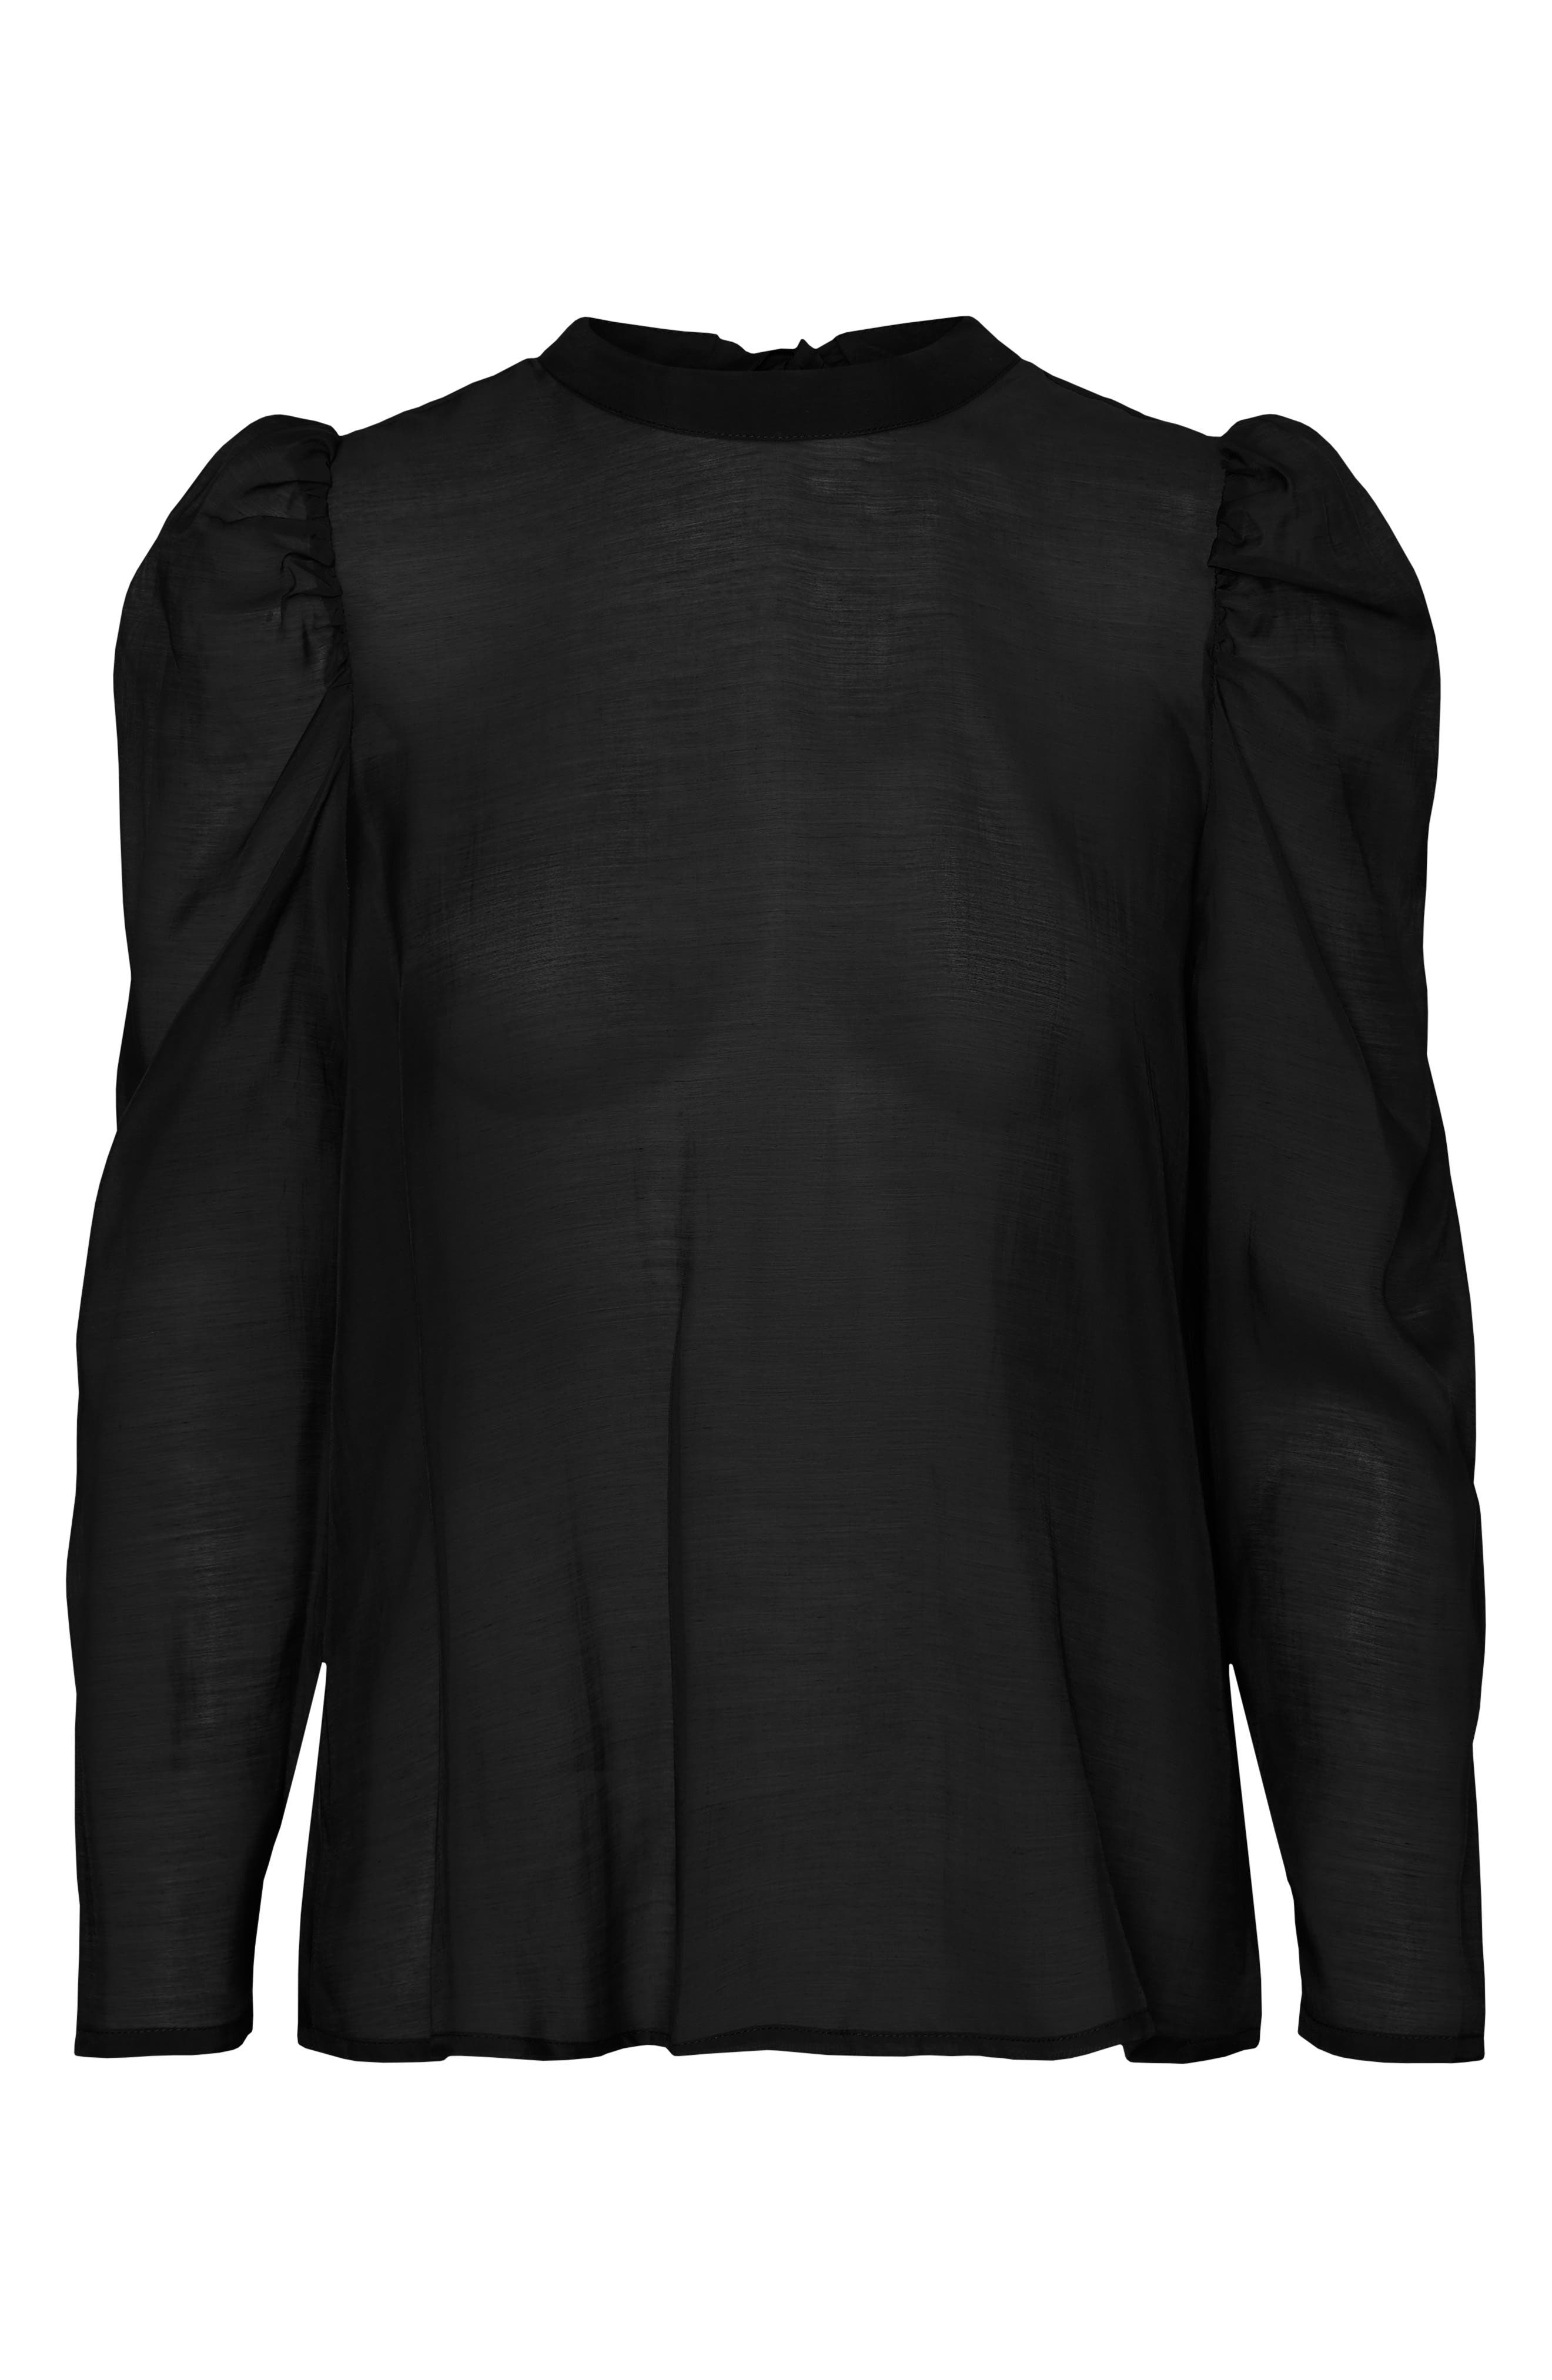 Image of AWARE BY VERO MODA Melonie Back Tie Blouse